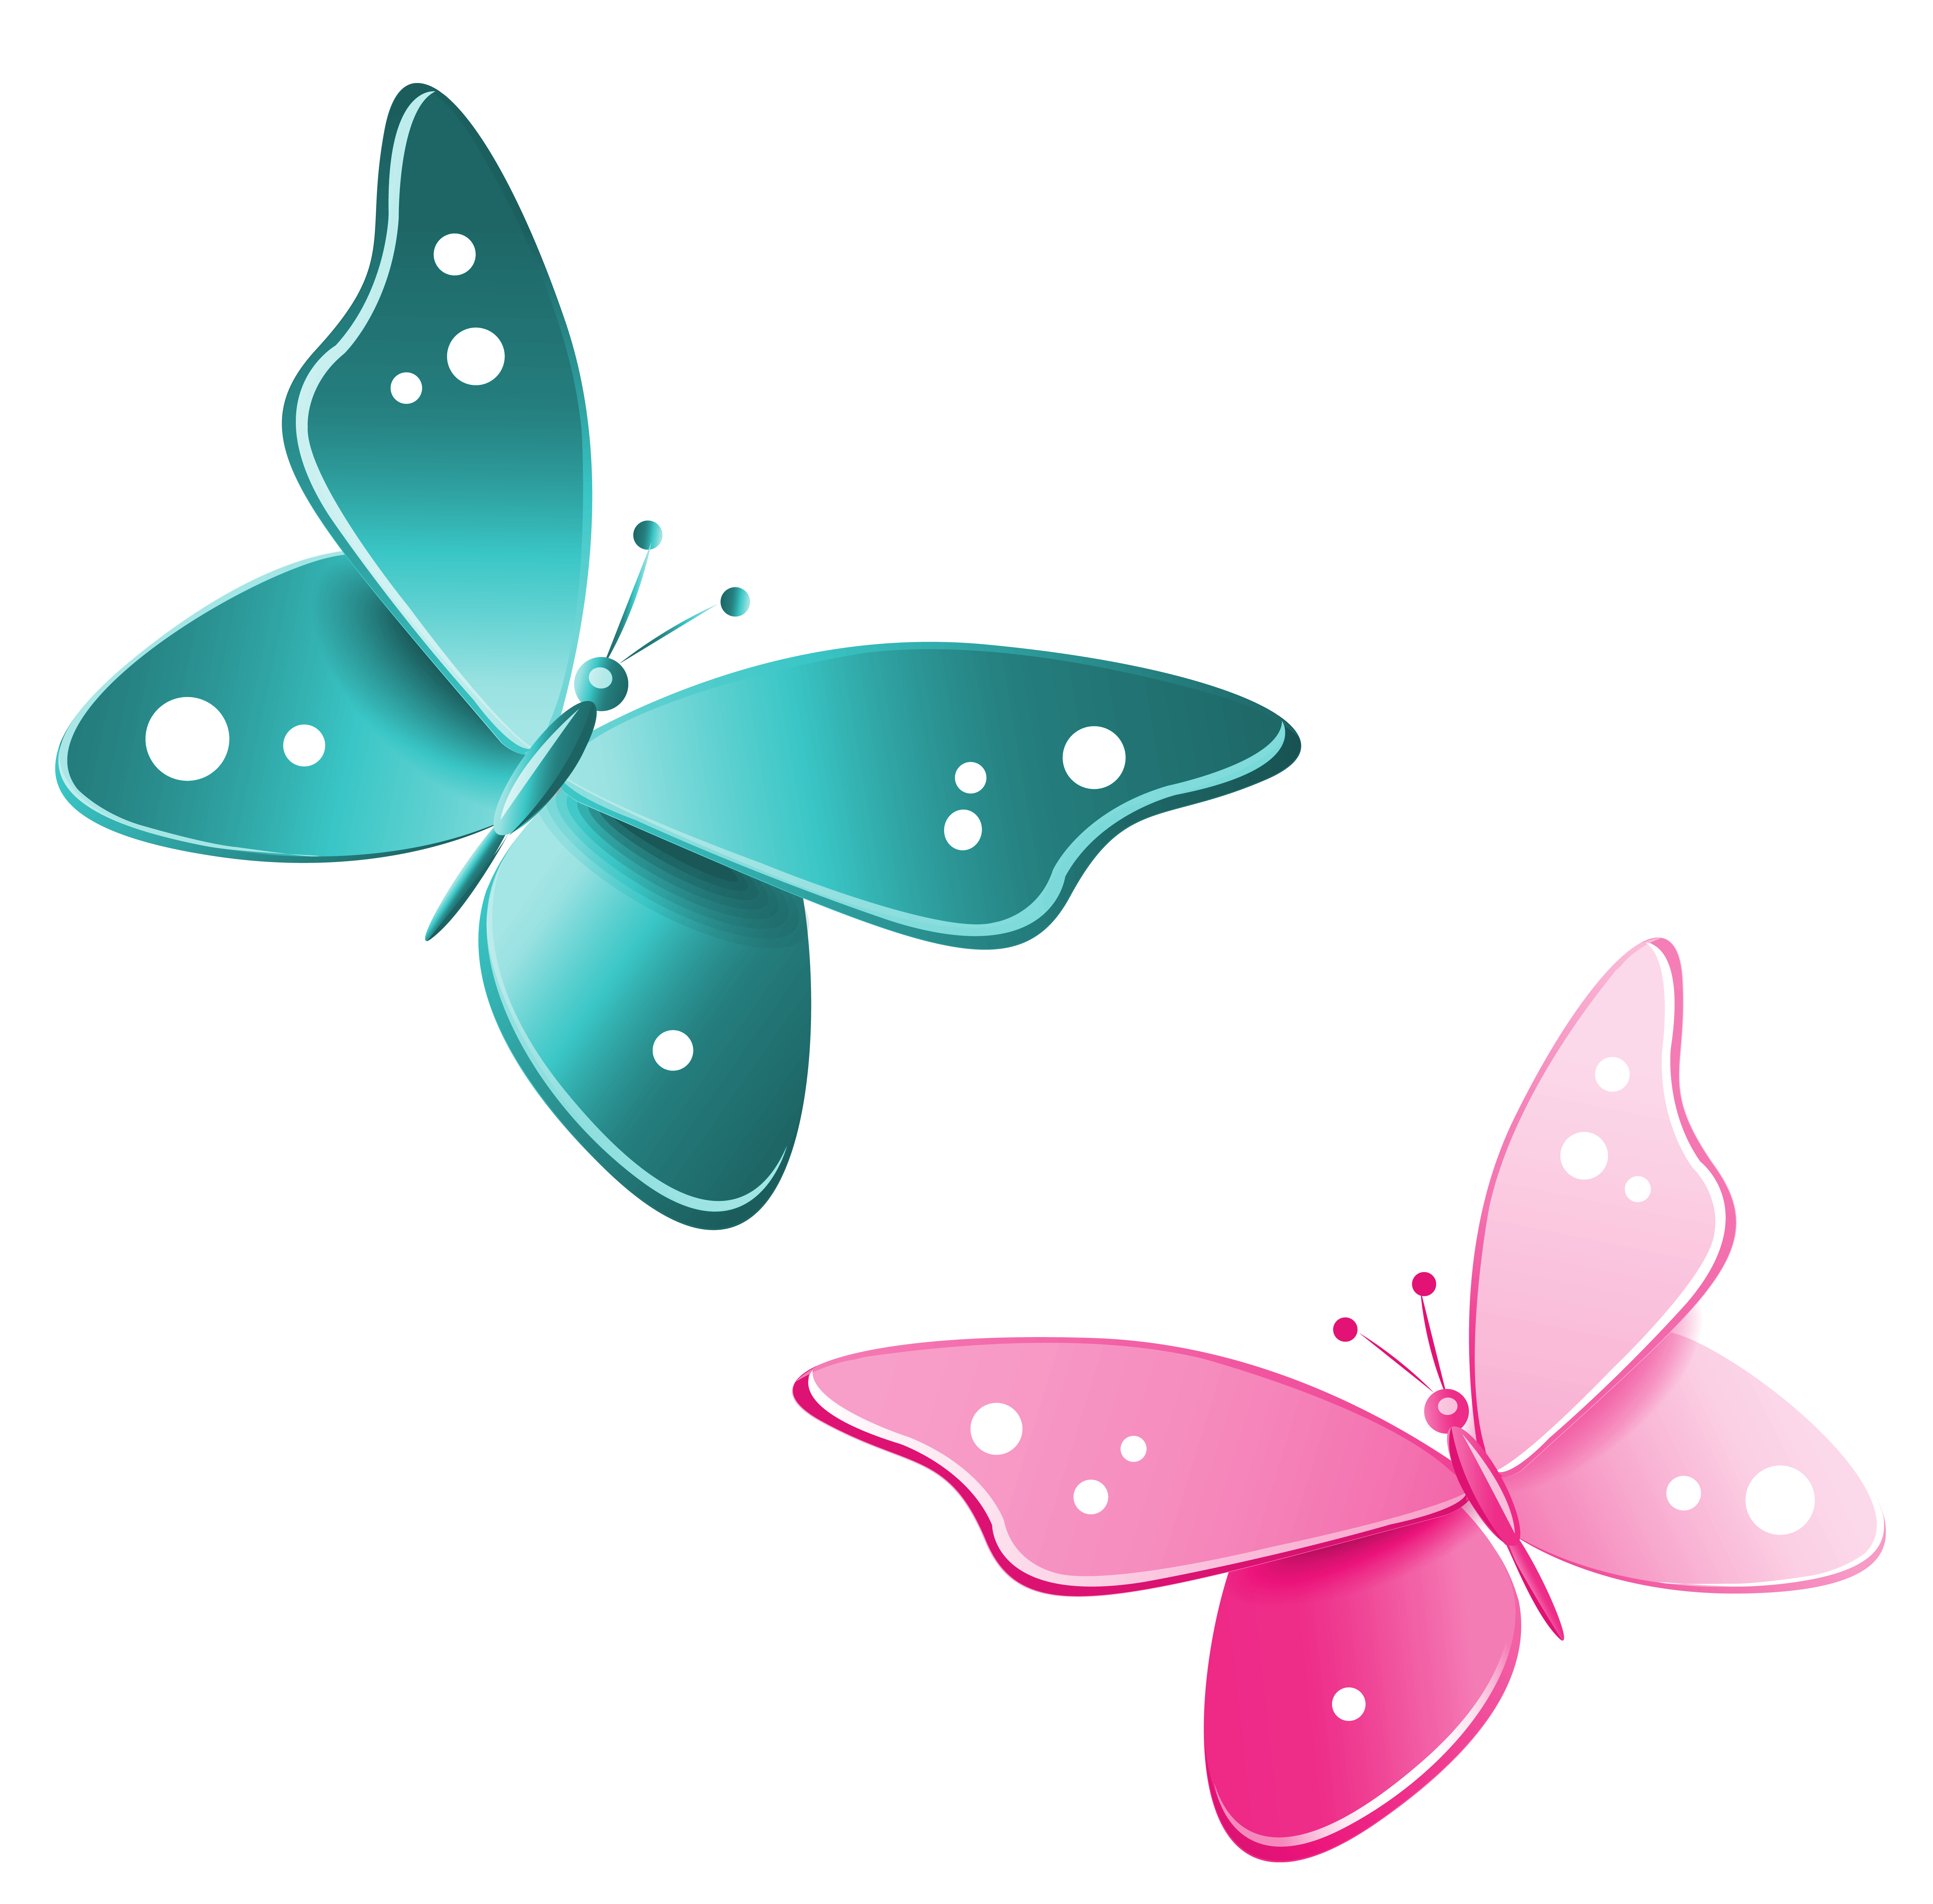 P clipart teal. Blue and pink butterflies